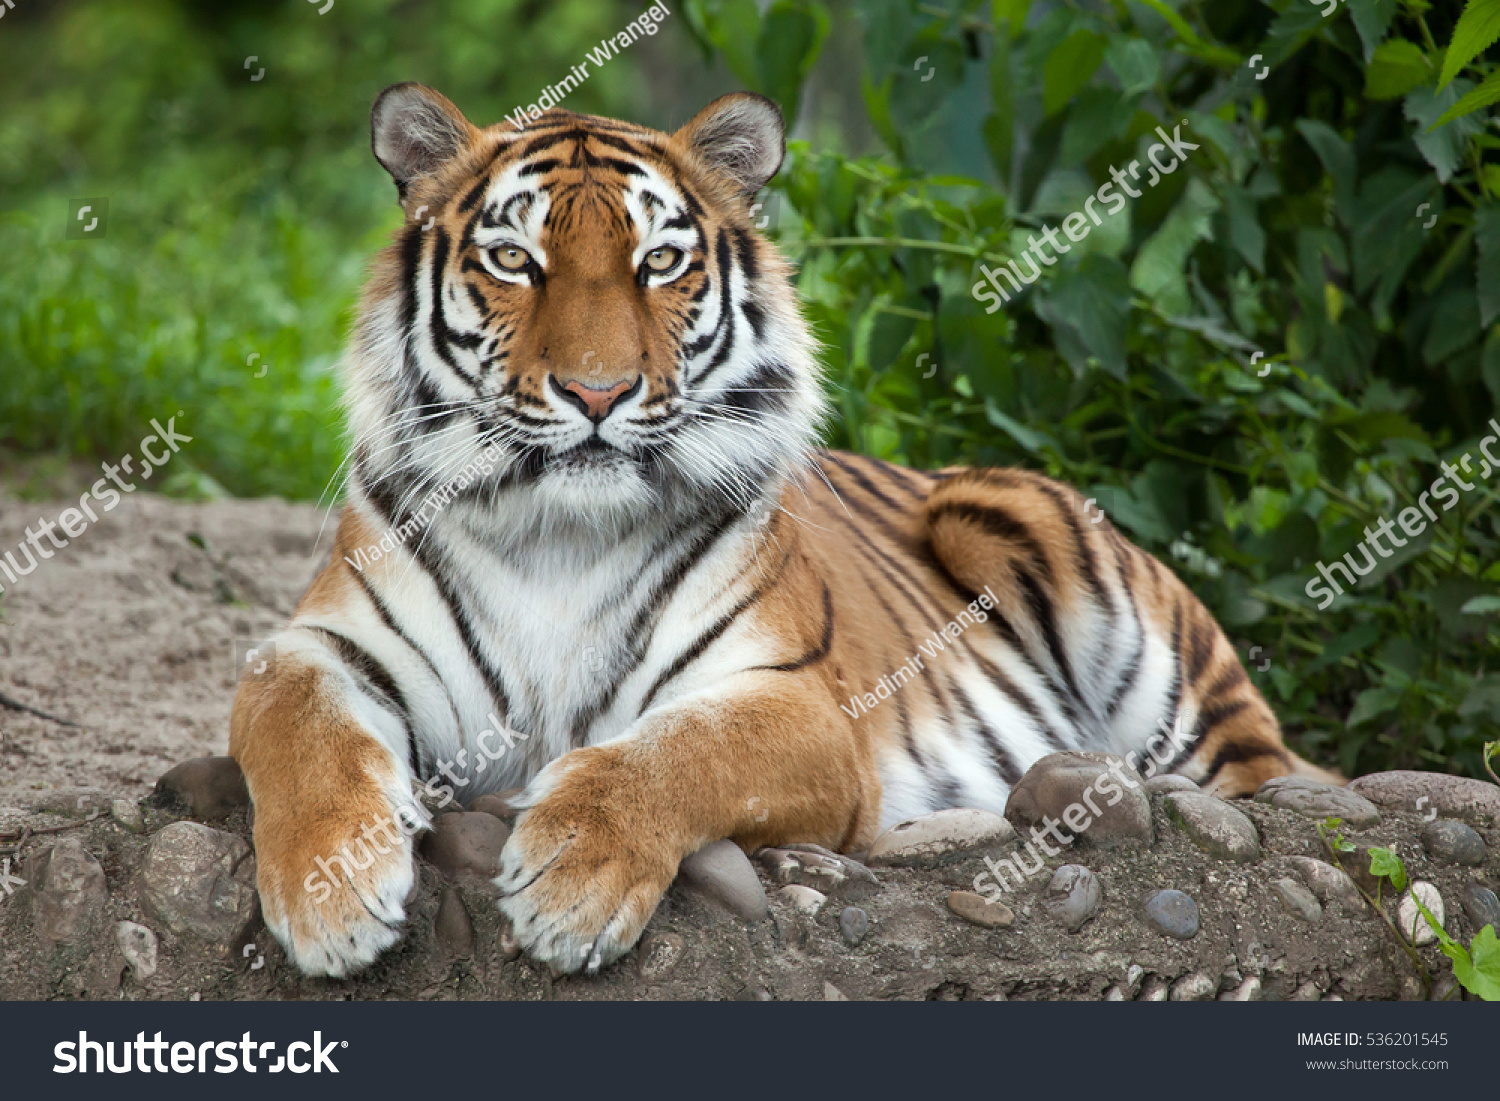 Siberian tiger (Panthera tigris altaica), also known as the Amur tiger. #536201545